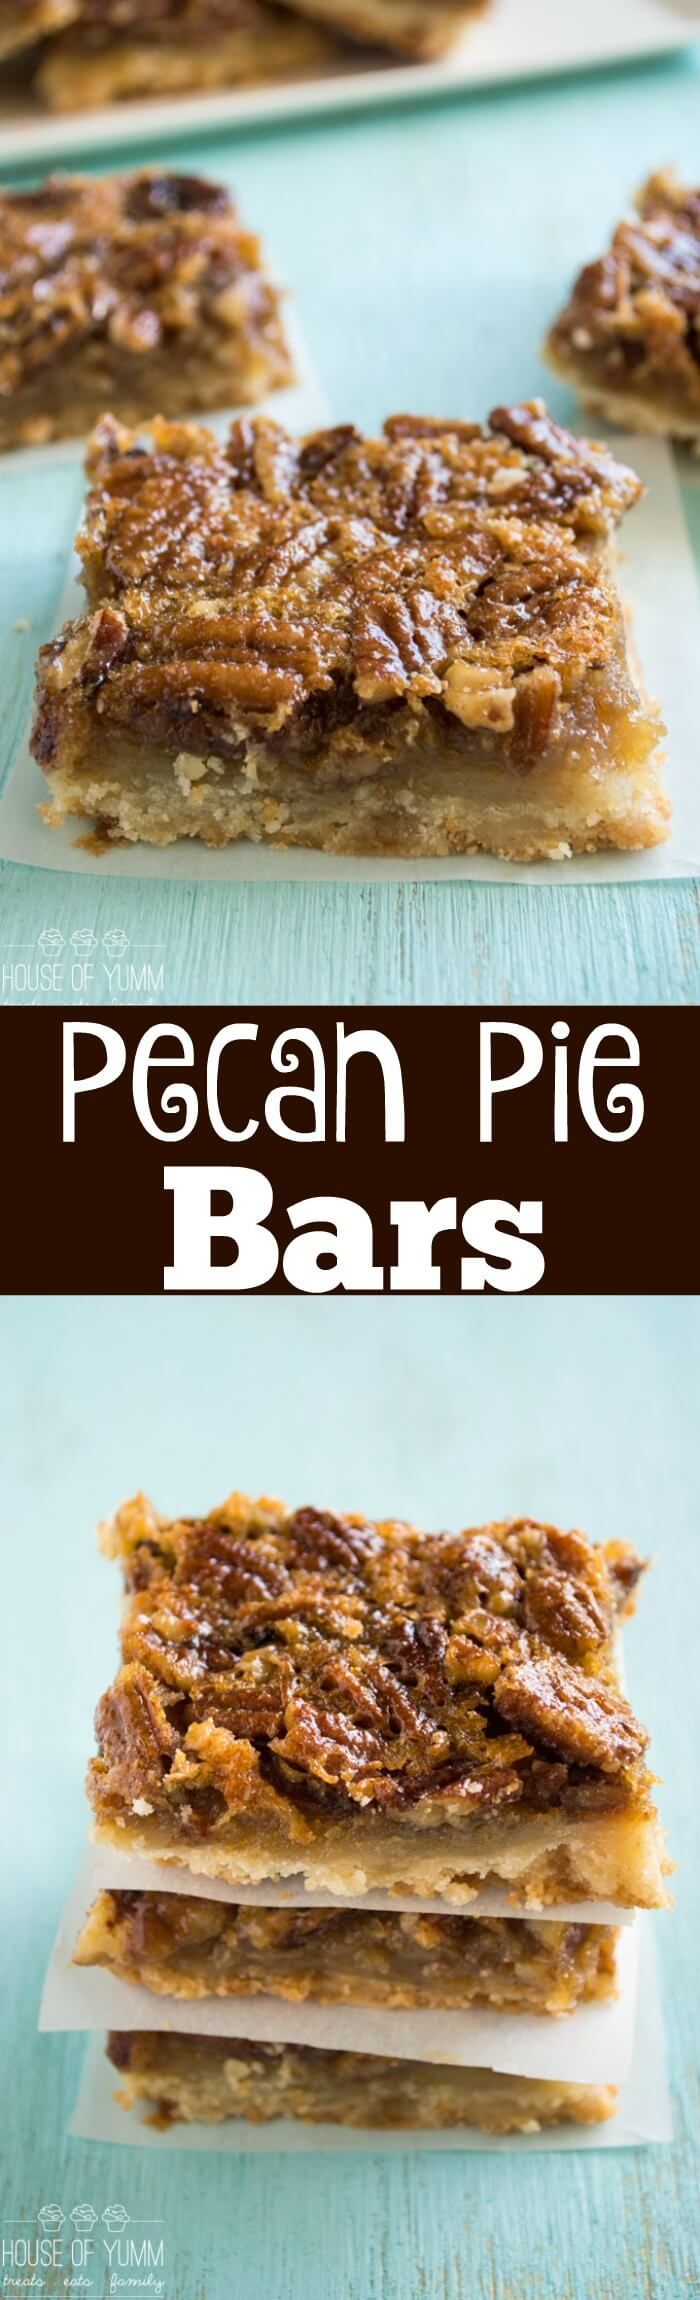 This Pecan Pie Bar is the perfect laid-back version of it's cousin the pie. Pecan Pie filling on top of a flaky, sugar cookie type crust.